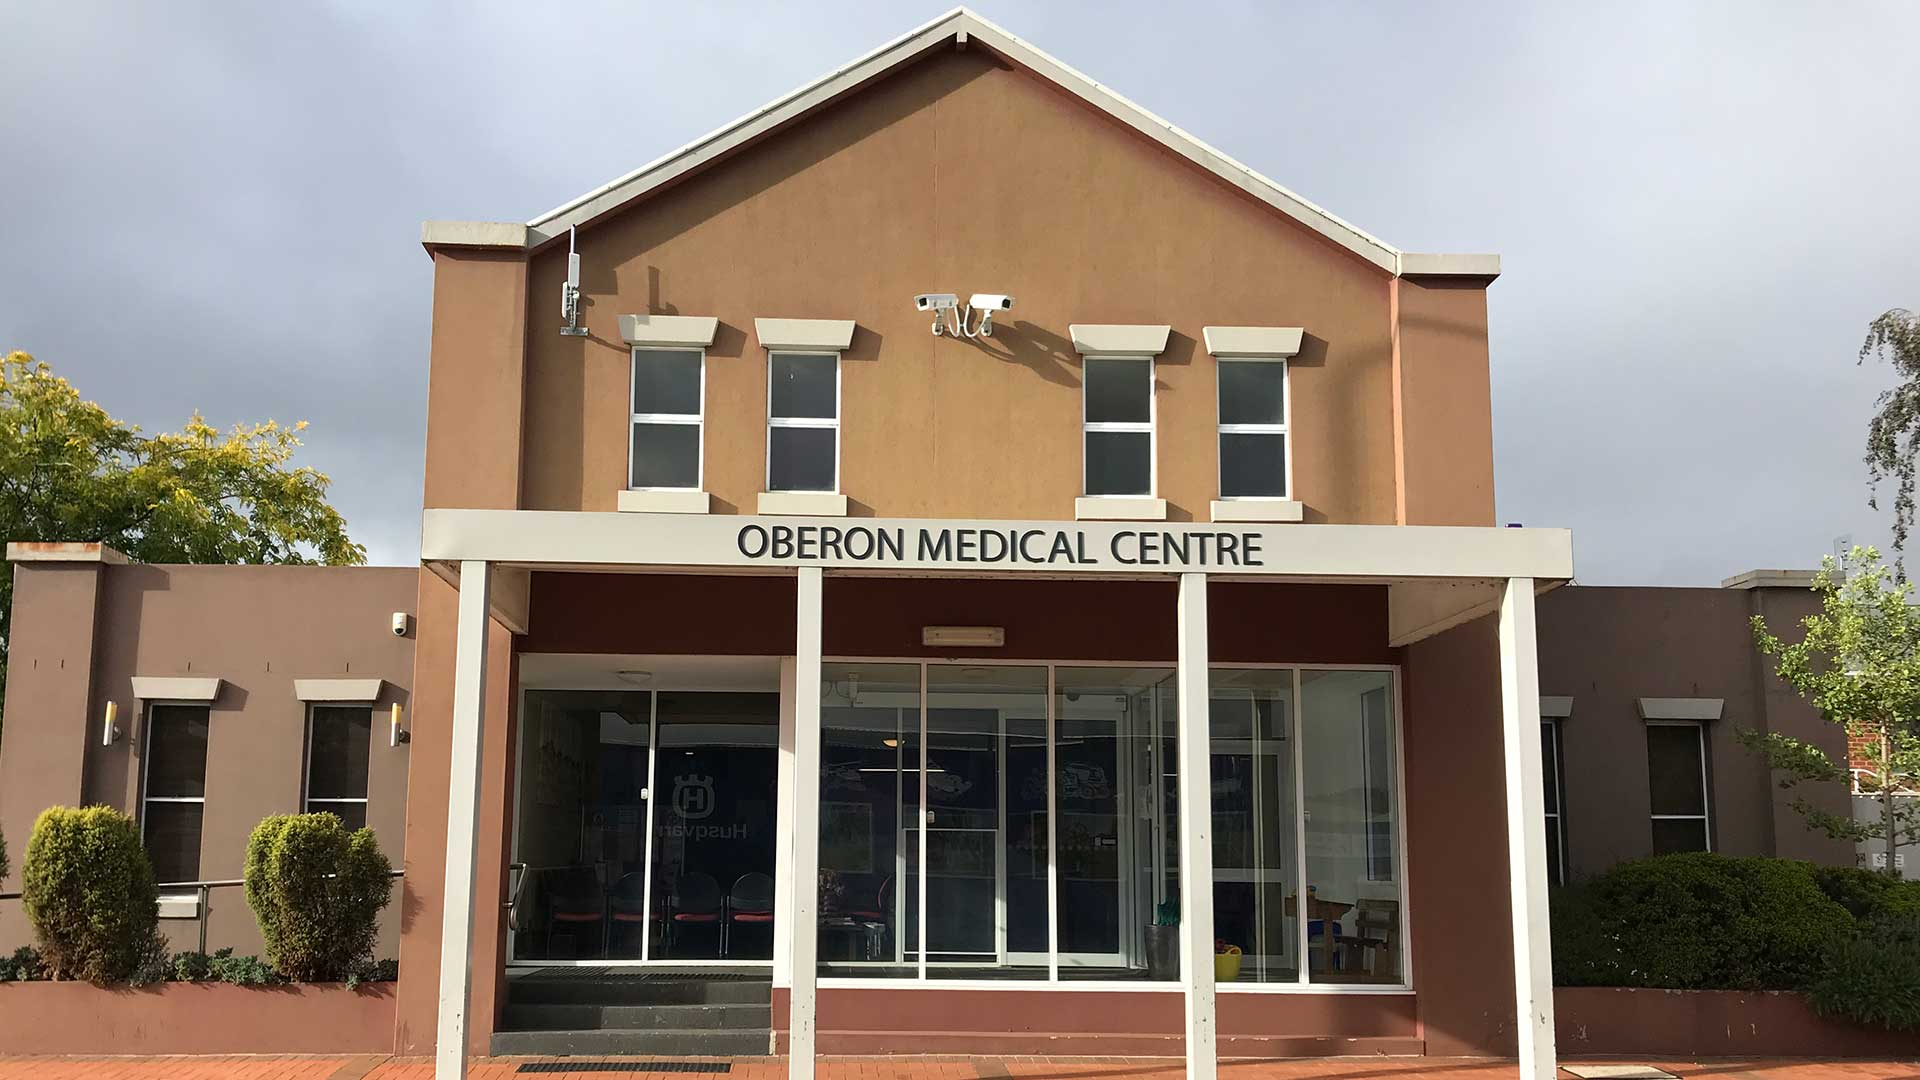 Living - Medical Centre | Visit Oberon